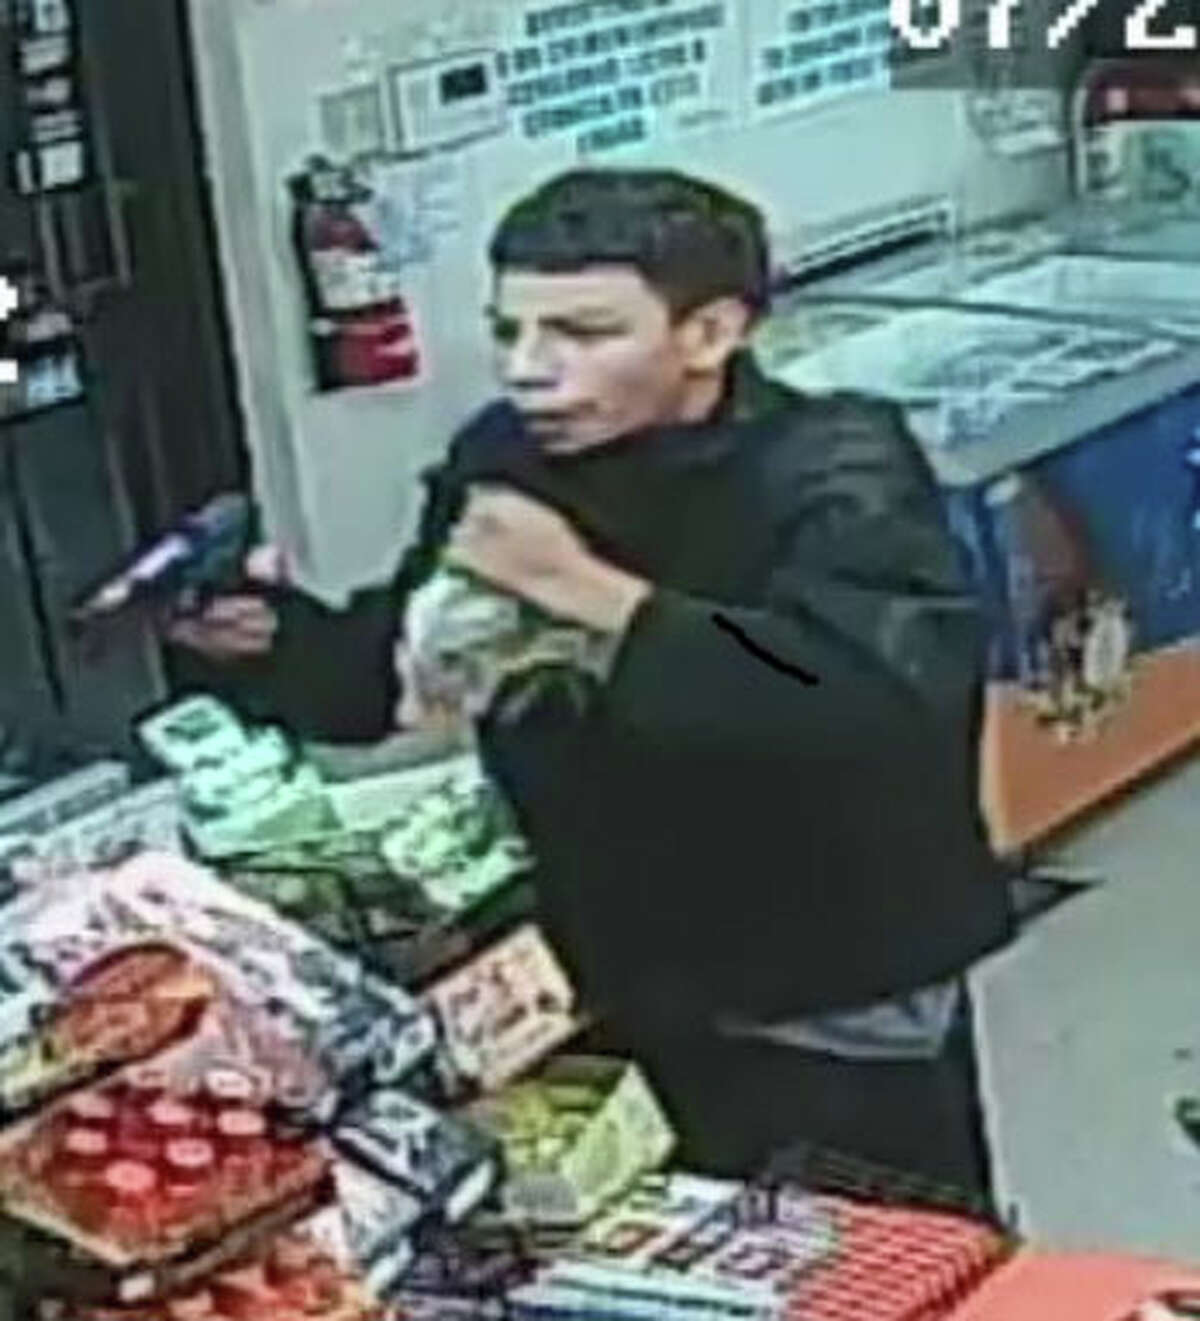 Hurst Police Department finally catch glimpse of suspect after nearly 12 armed robberies.